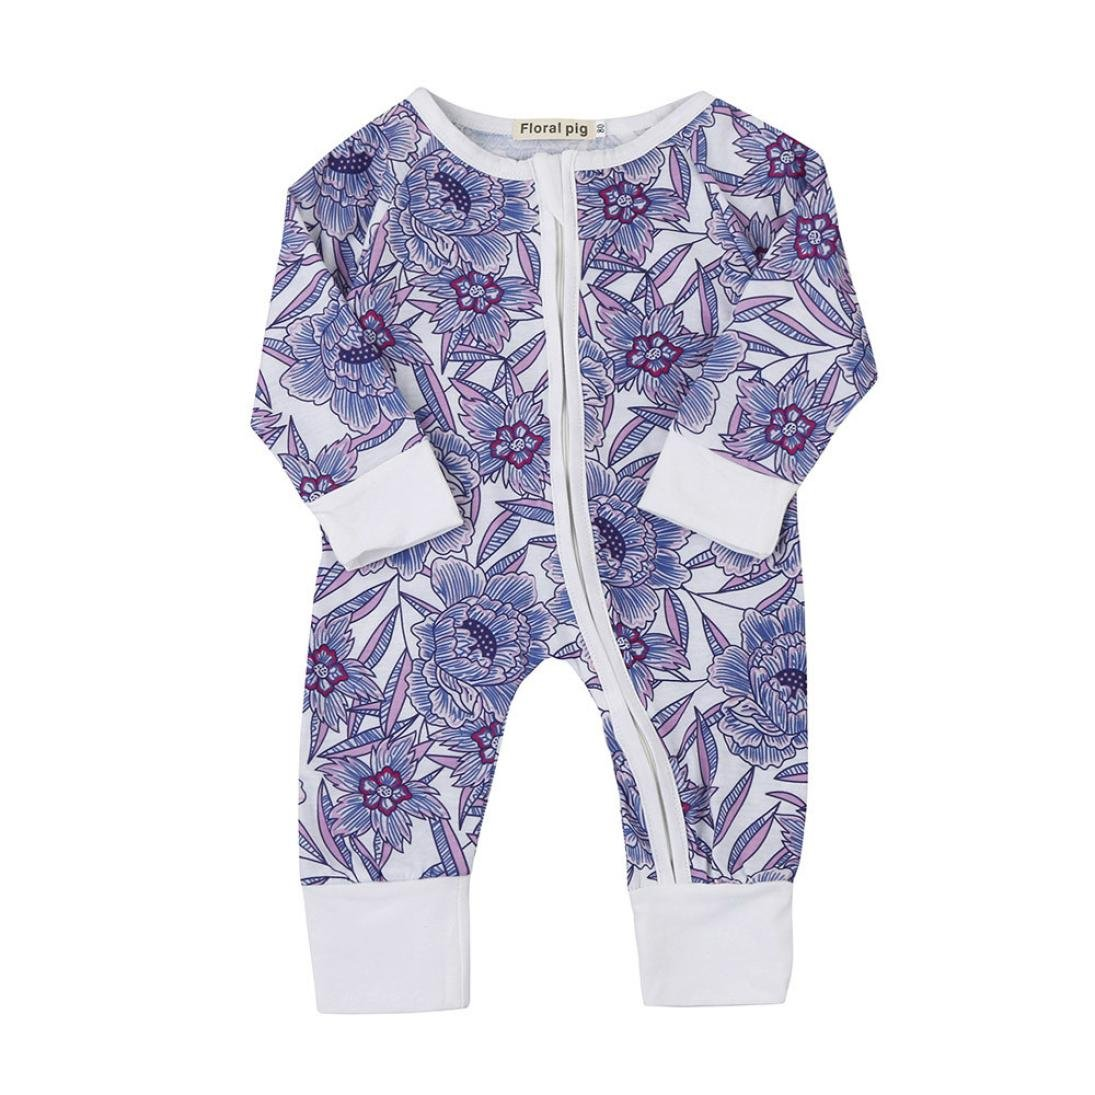 Fartido 0-24Months Baby Boys Girls Flower Print Romper Zipper Jumpsuit Playwear Clothes